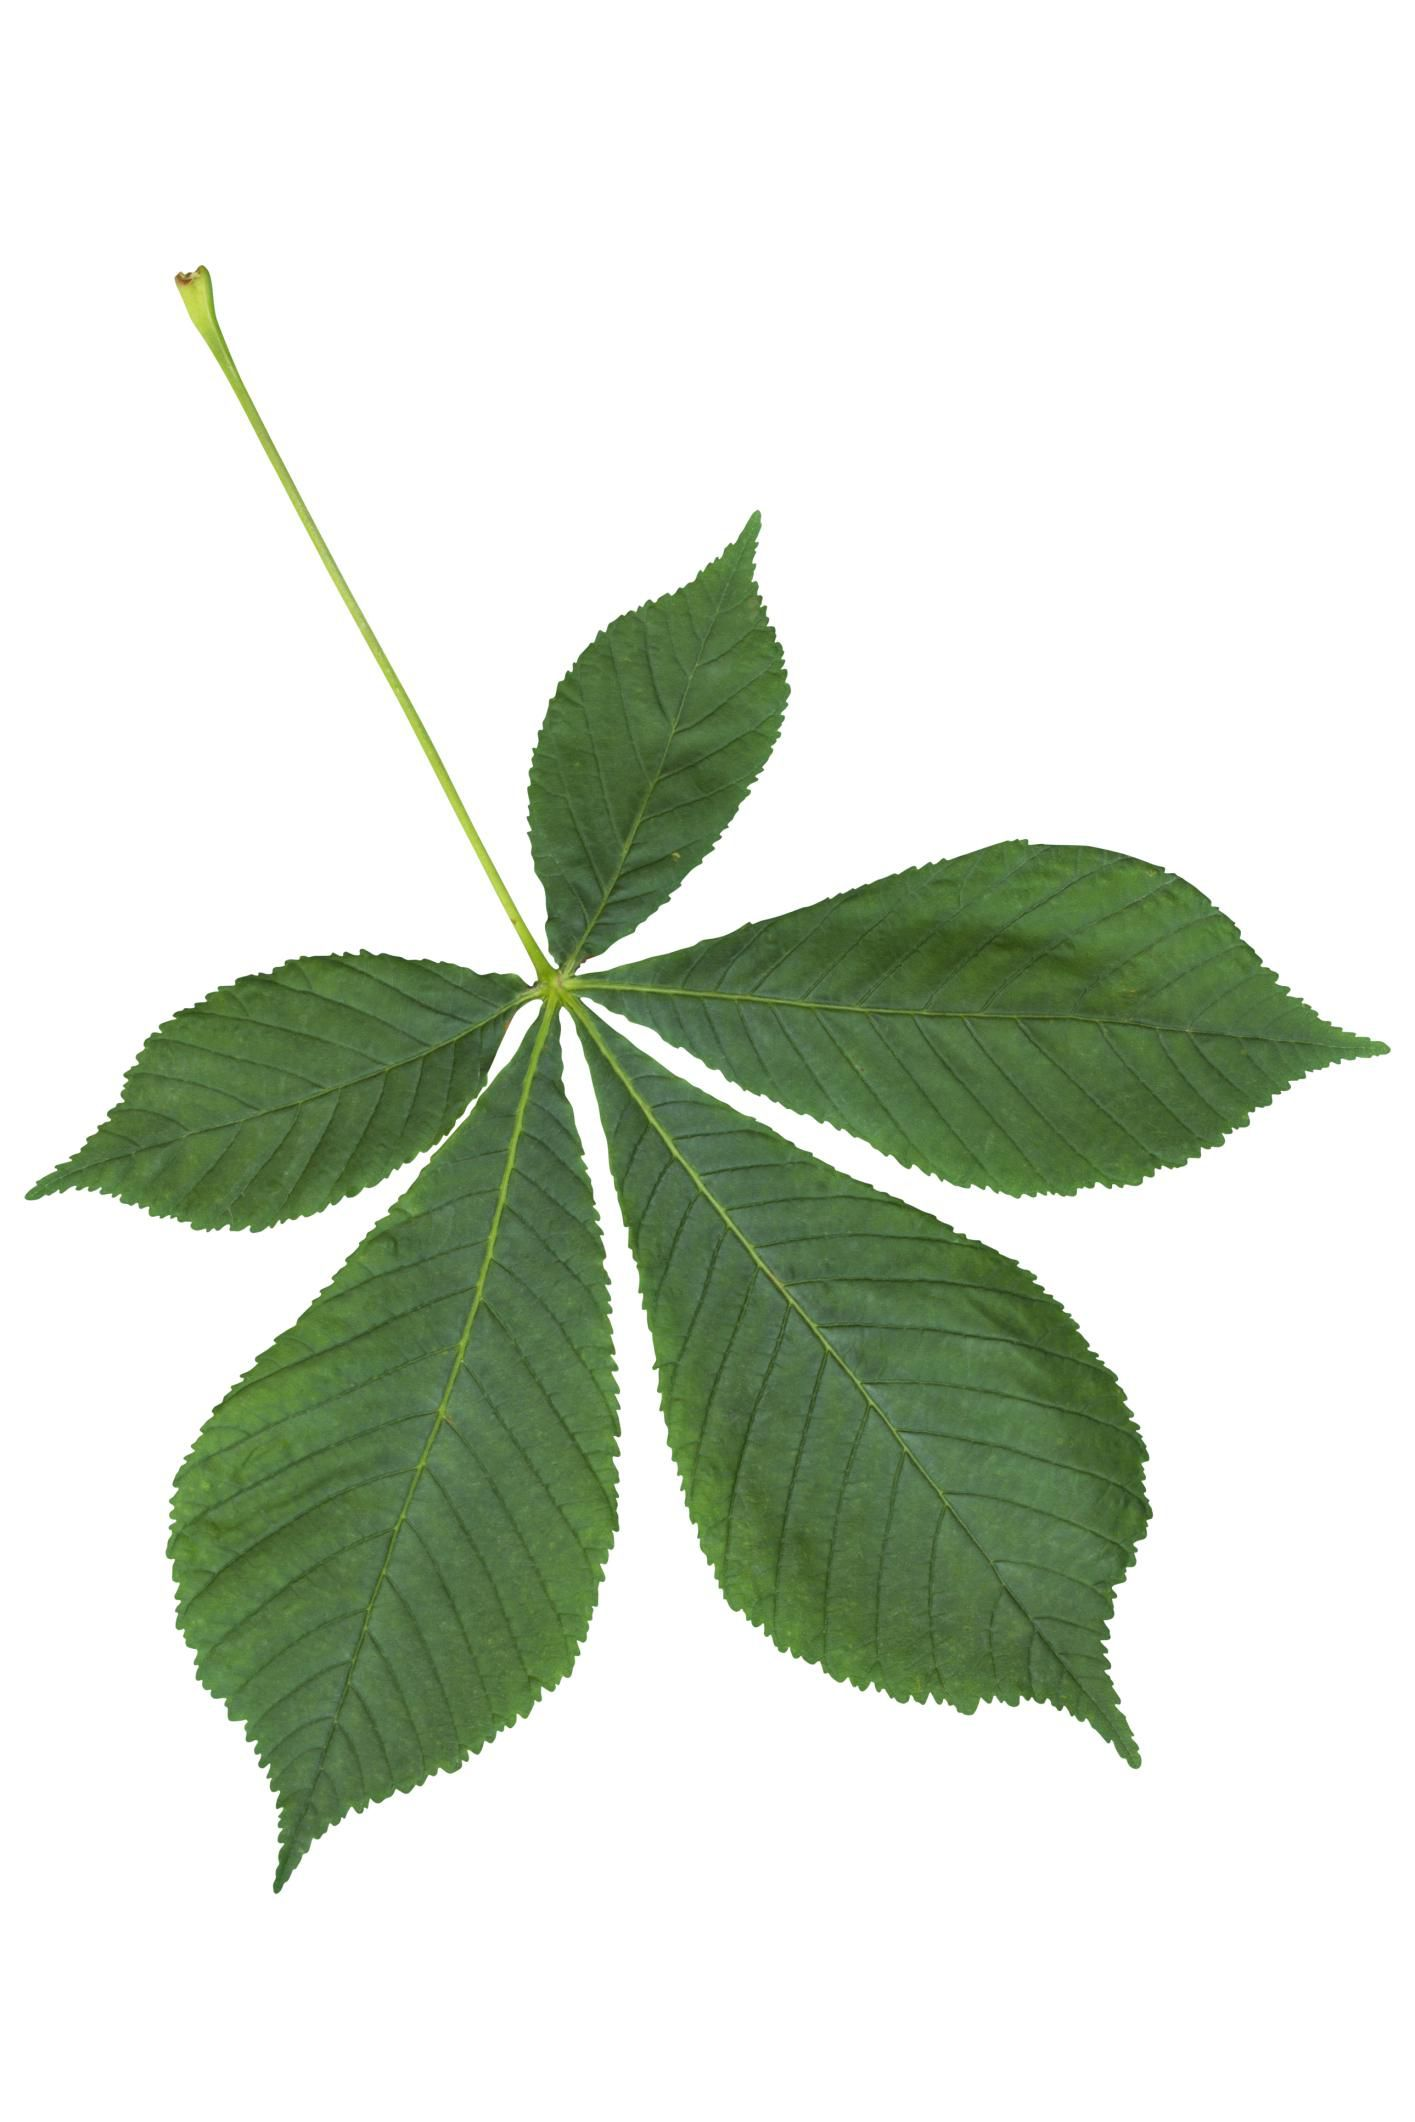 Palmate And Pinnate Compound Leaves